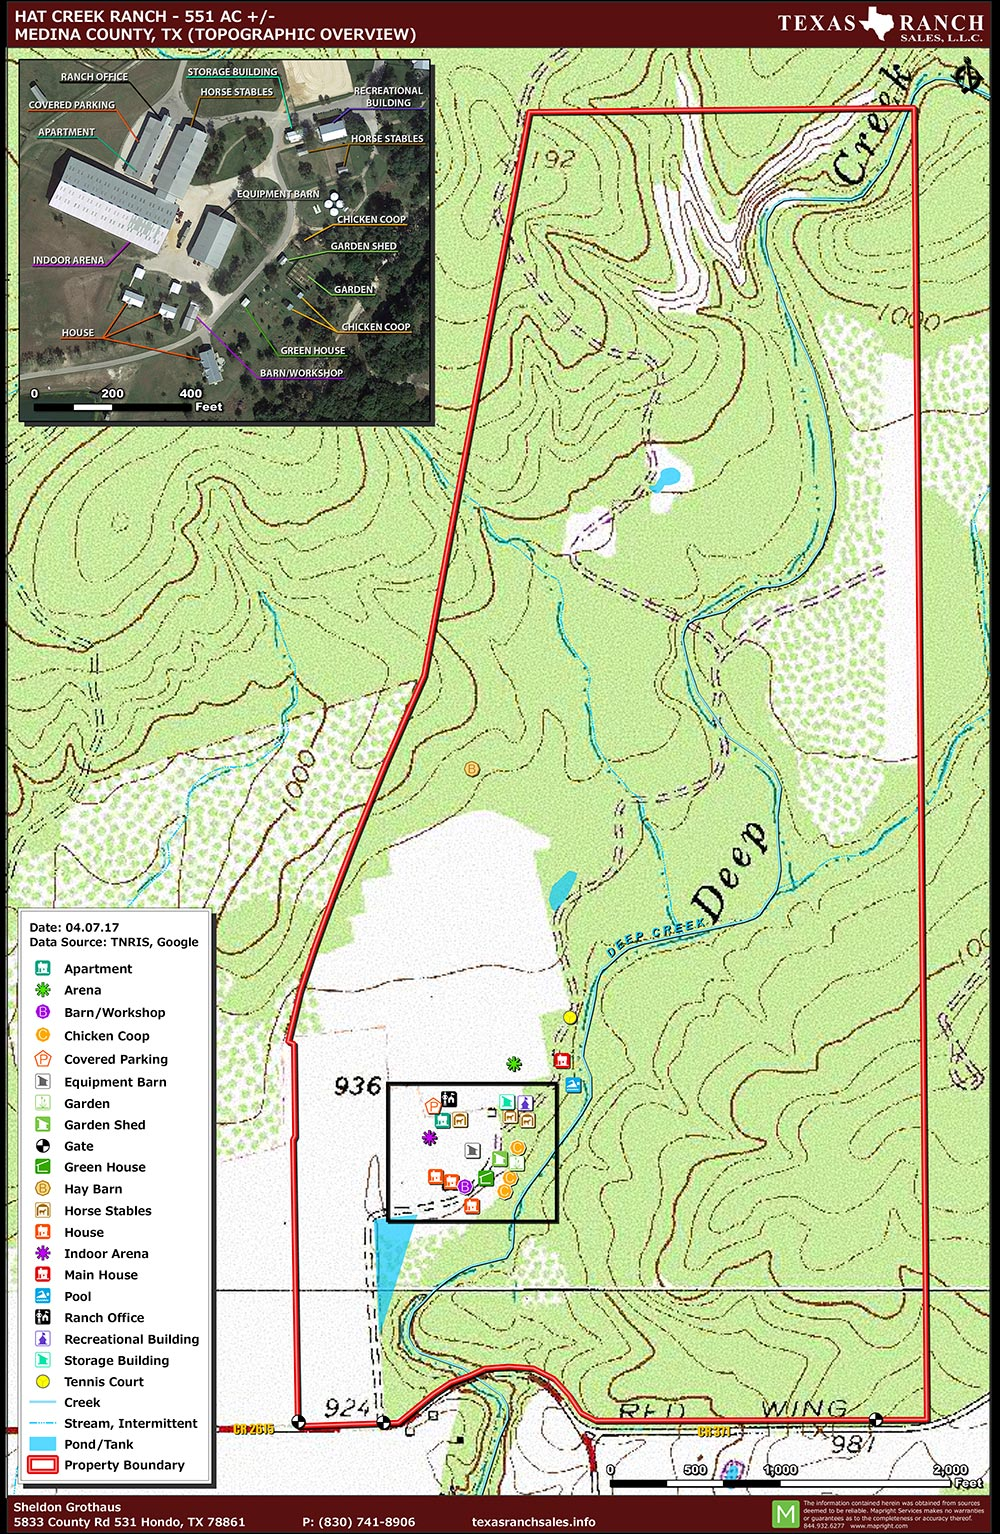 551 Acre Ranch Medina Topography Map